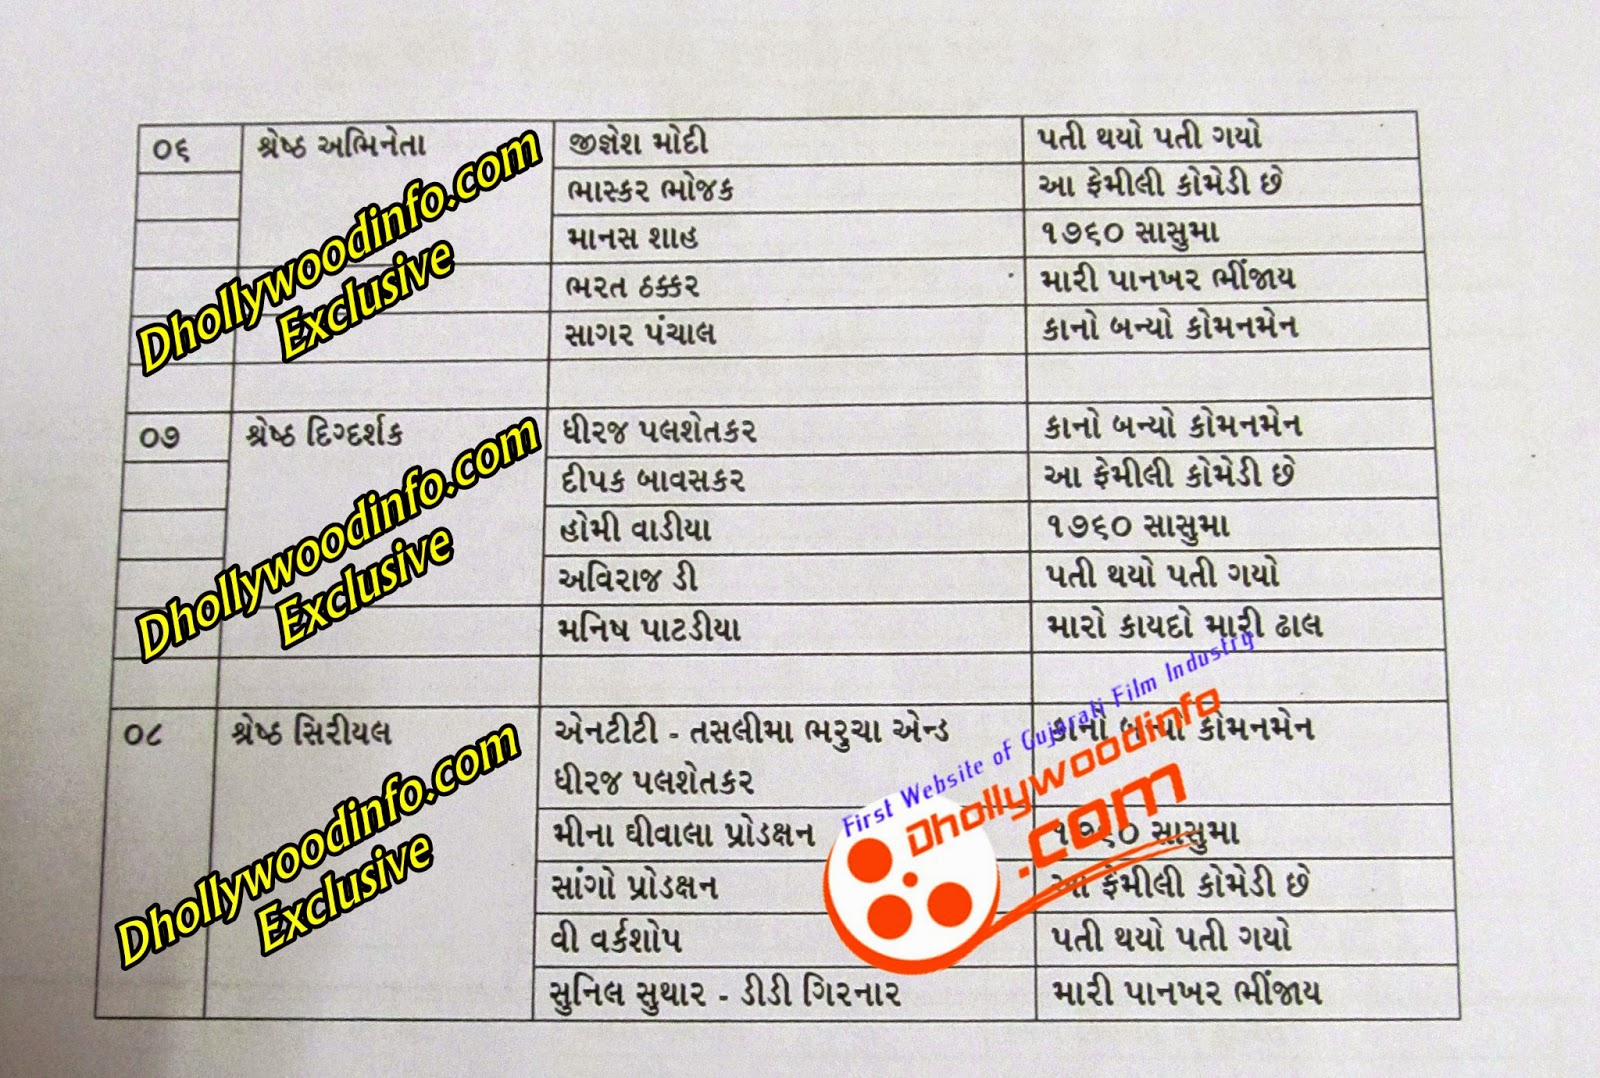 Nominations of TV Serials for Transmedia Gujarati Screen & Stage Awards 2014